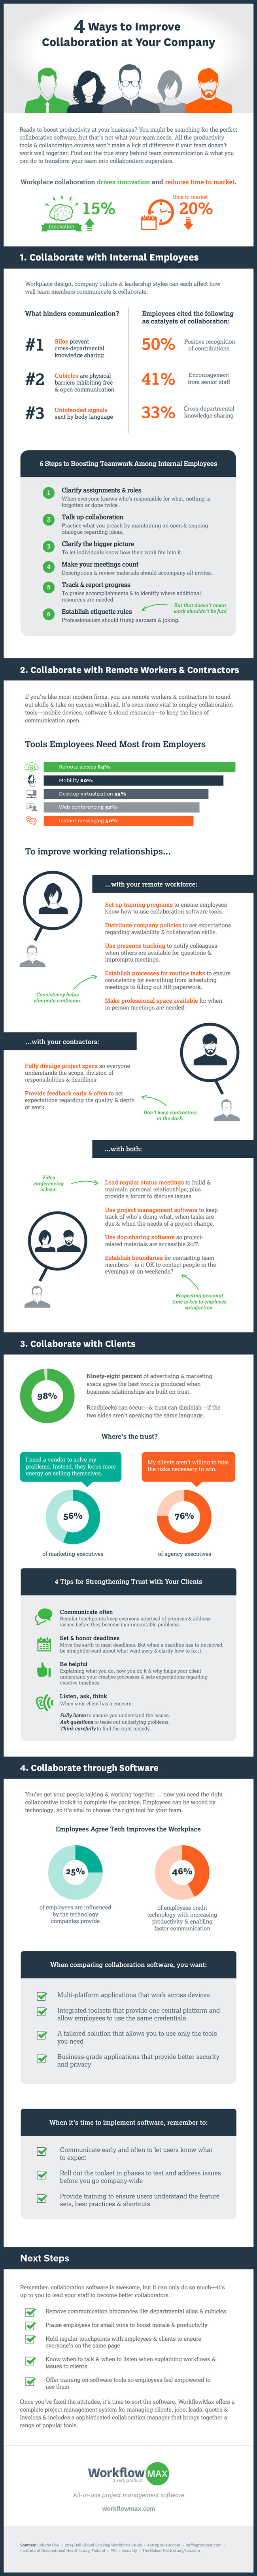 Infographic Improving Business Collaboration